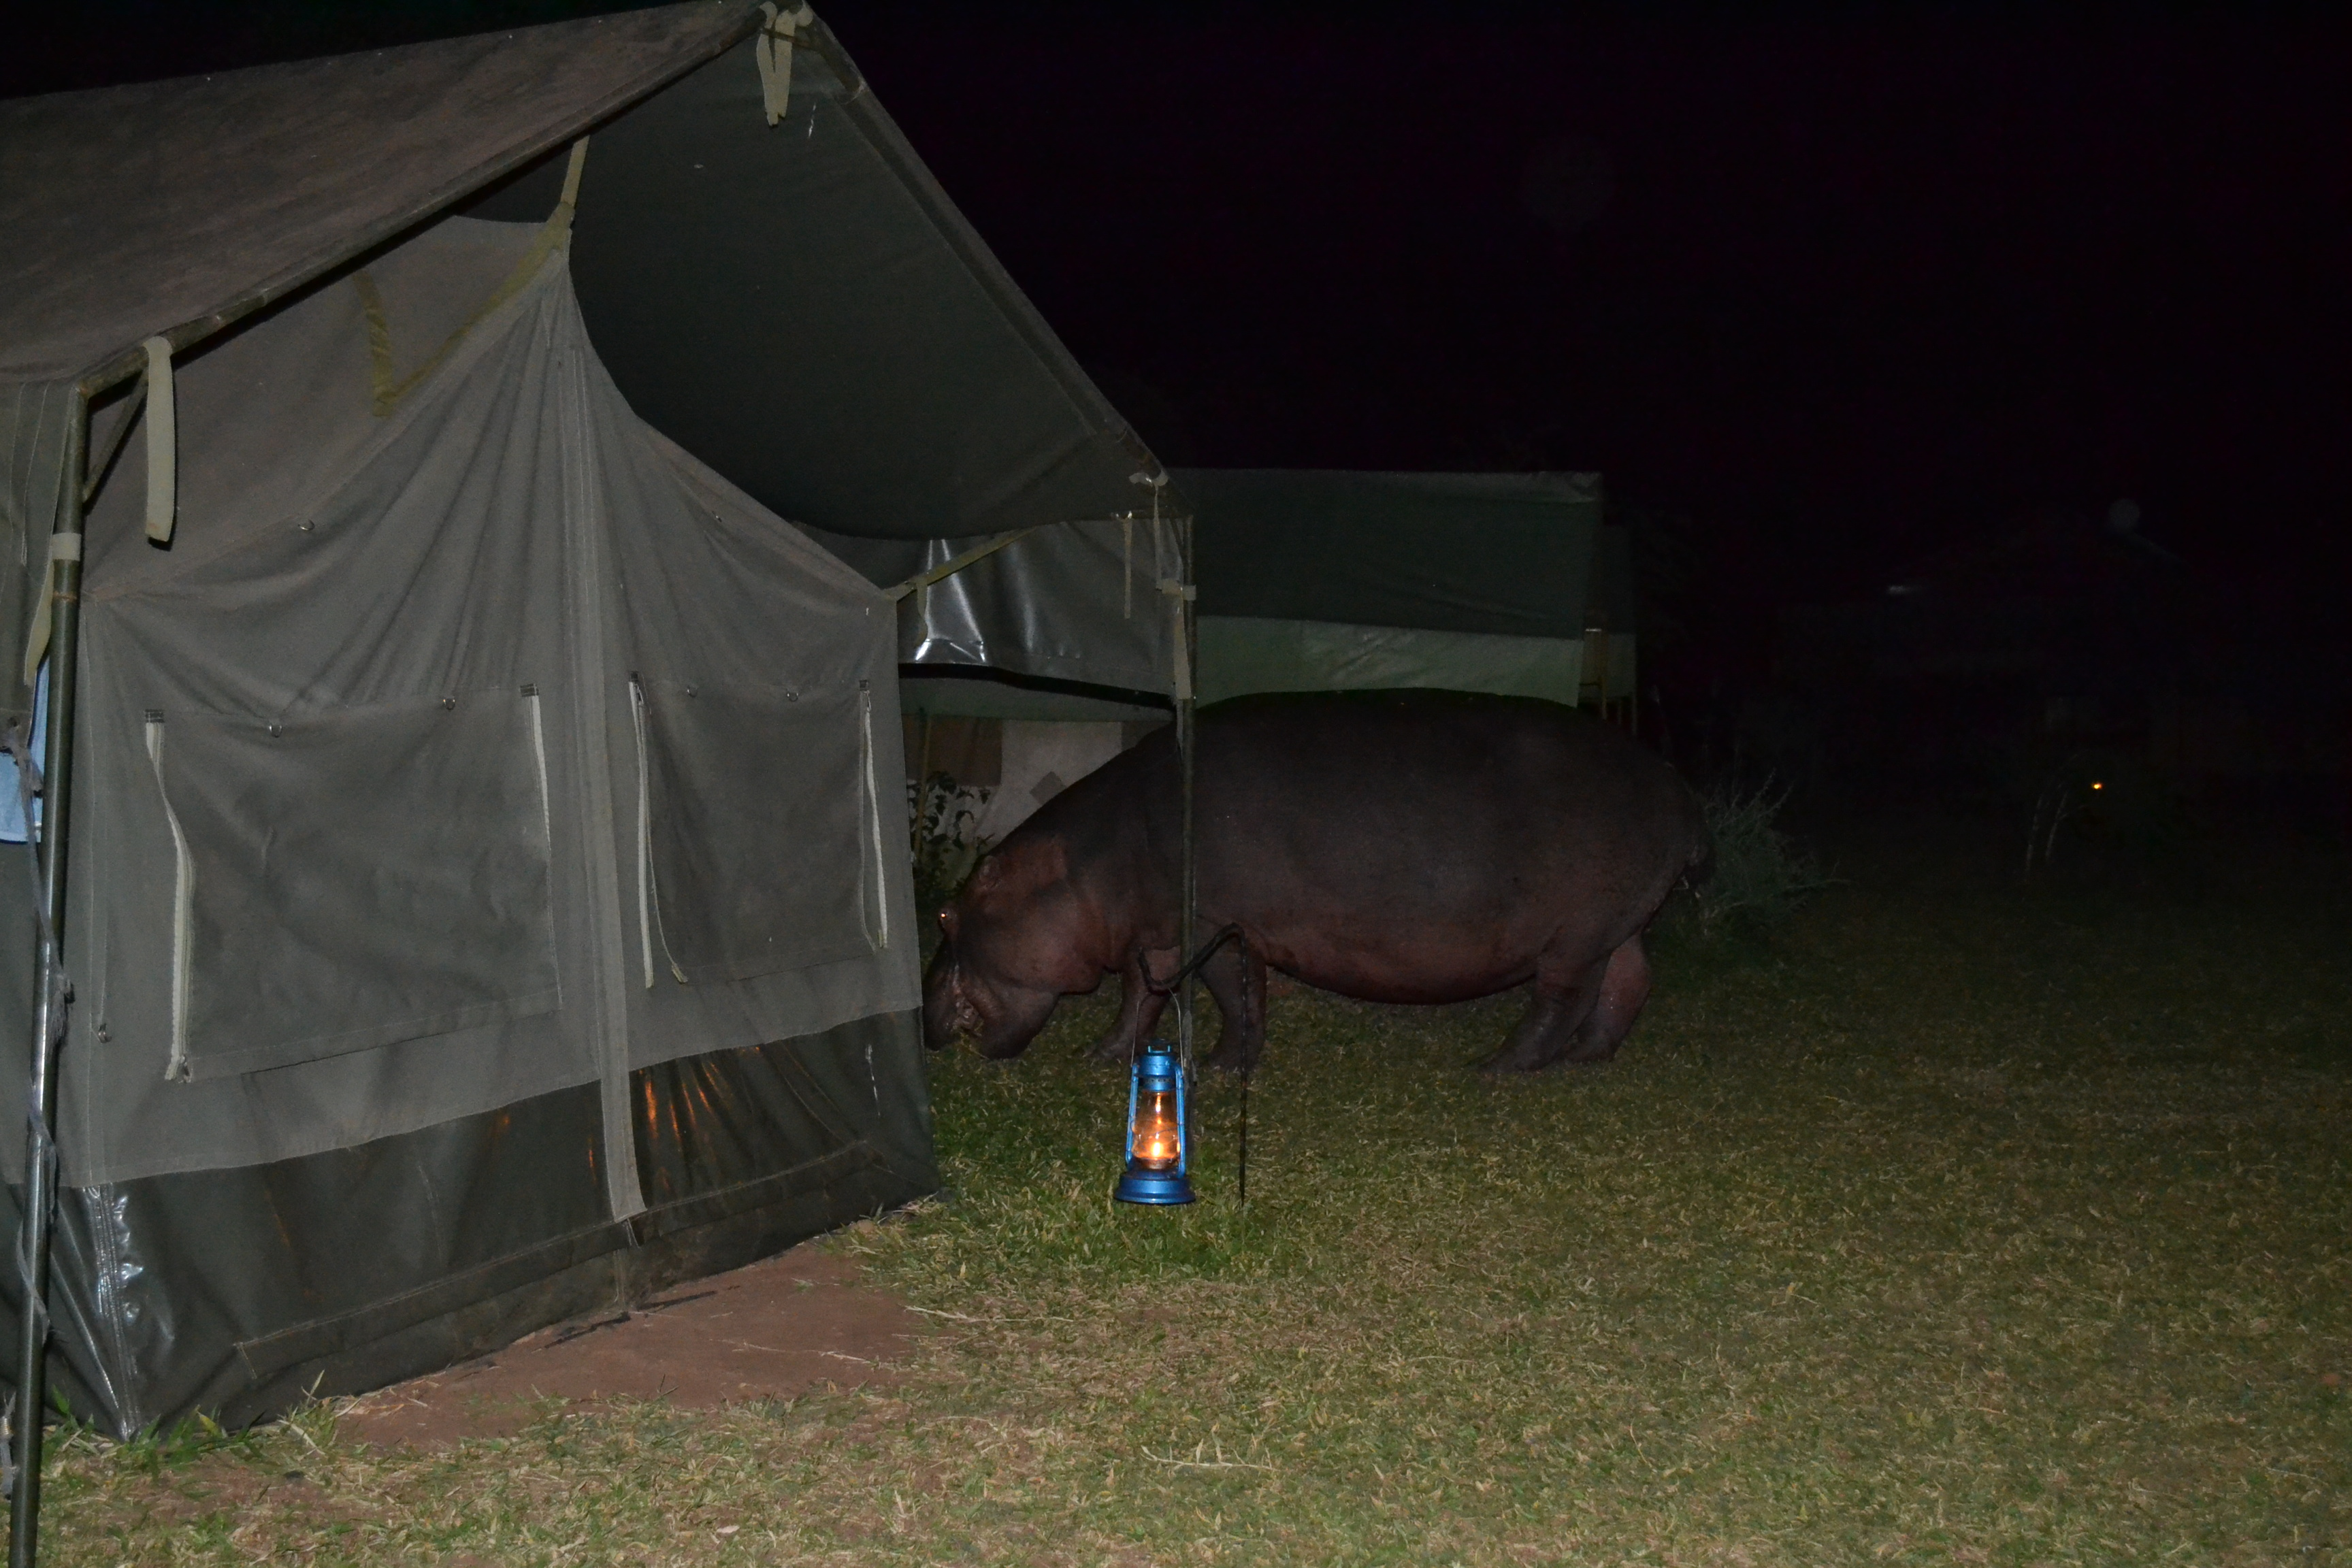 A hippo grazing next to the tent